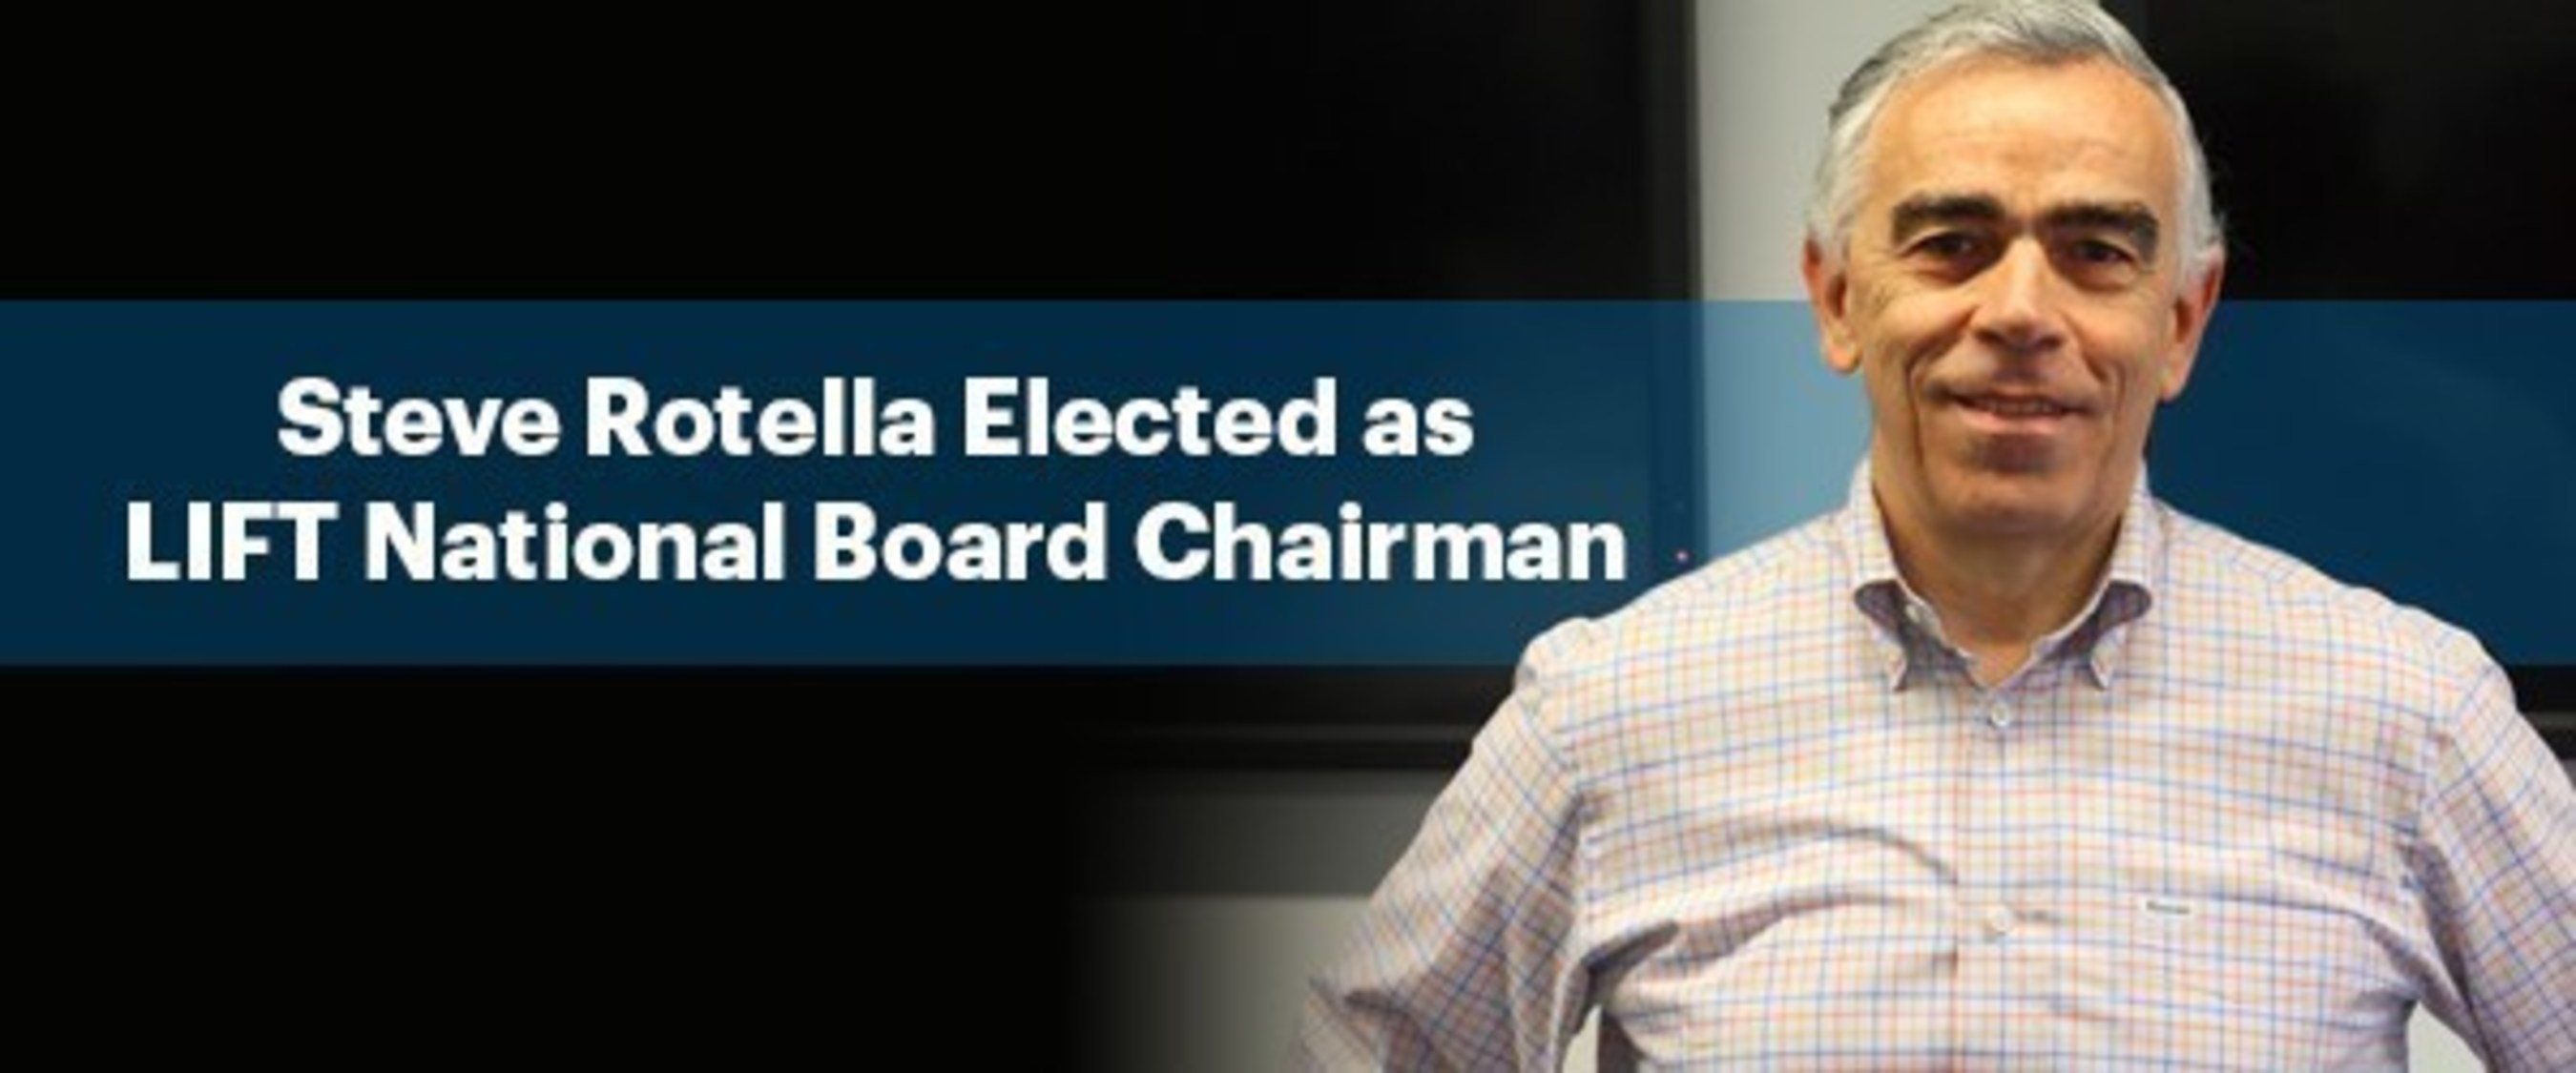 LIFT National Board of Directors Elects Stephen J. Rotella as New Chairman